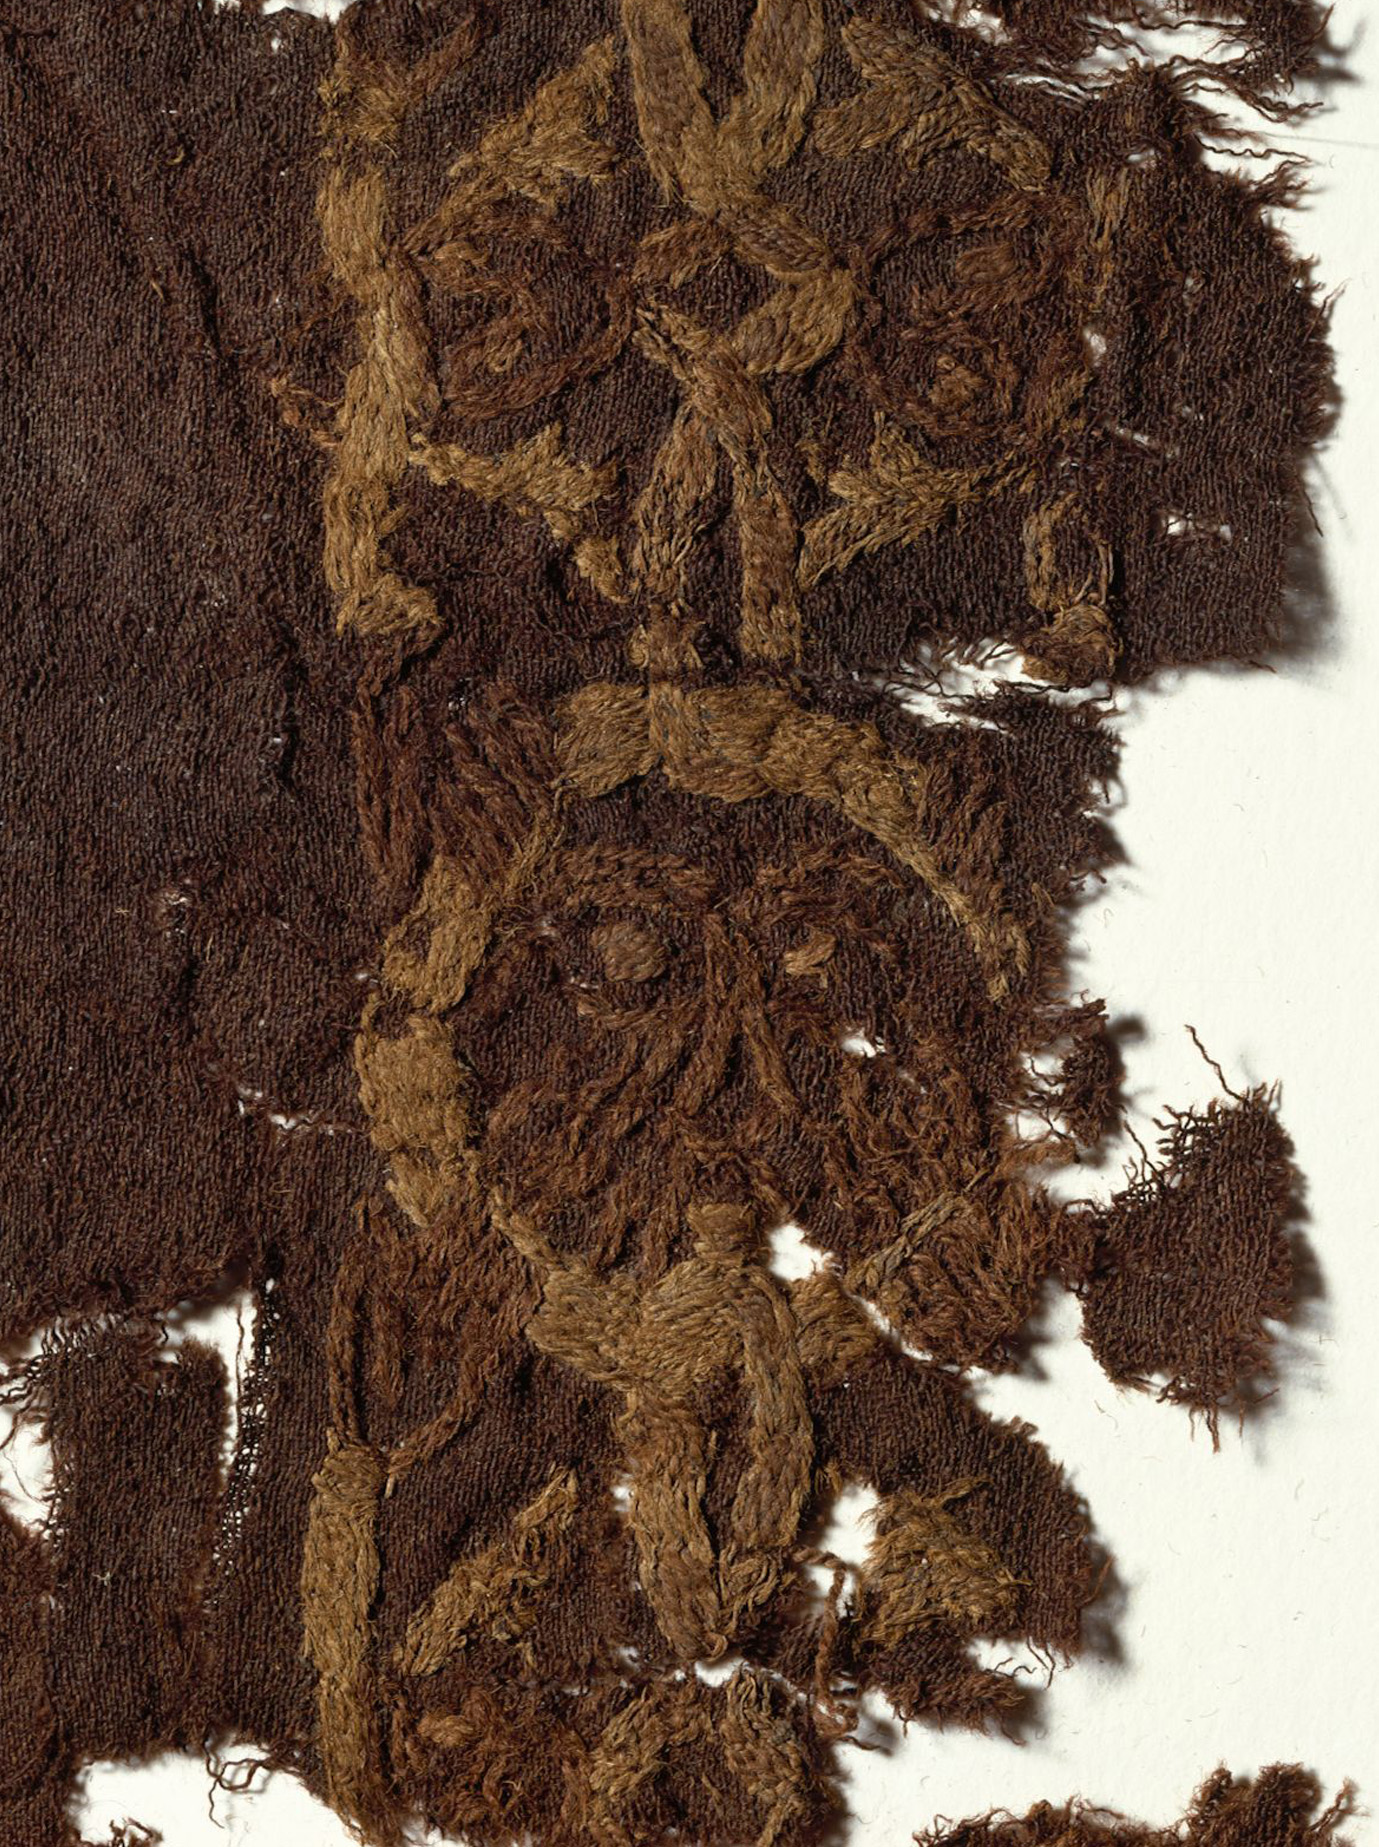 Broderie de la tombe de Mammen - Photo: Musée national du Danemark